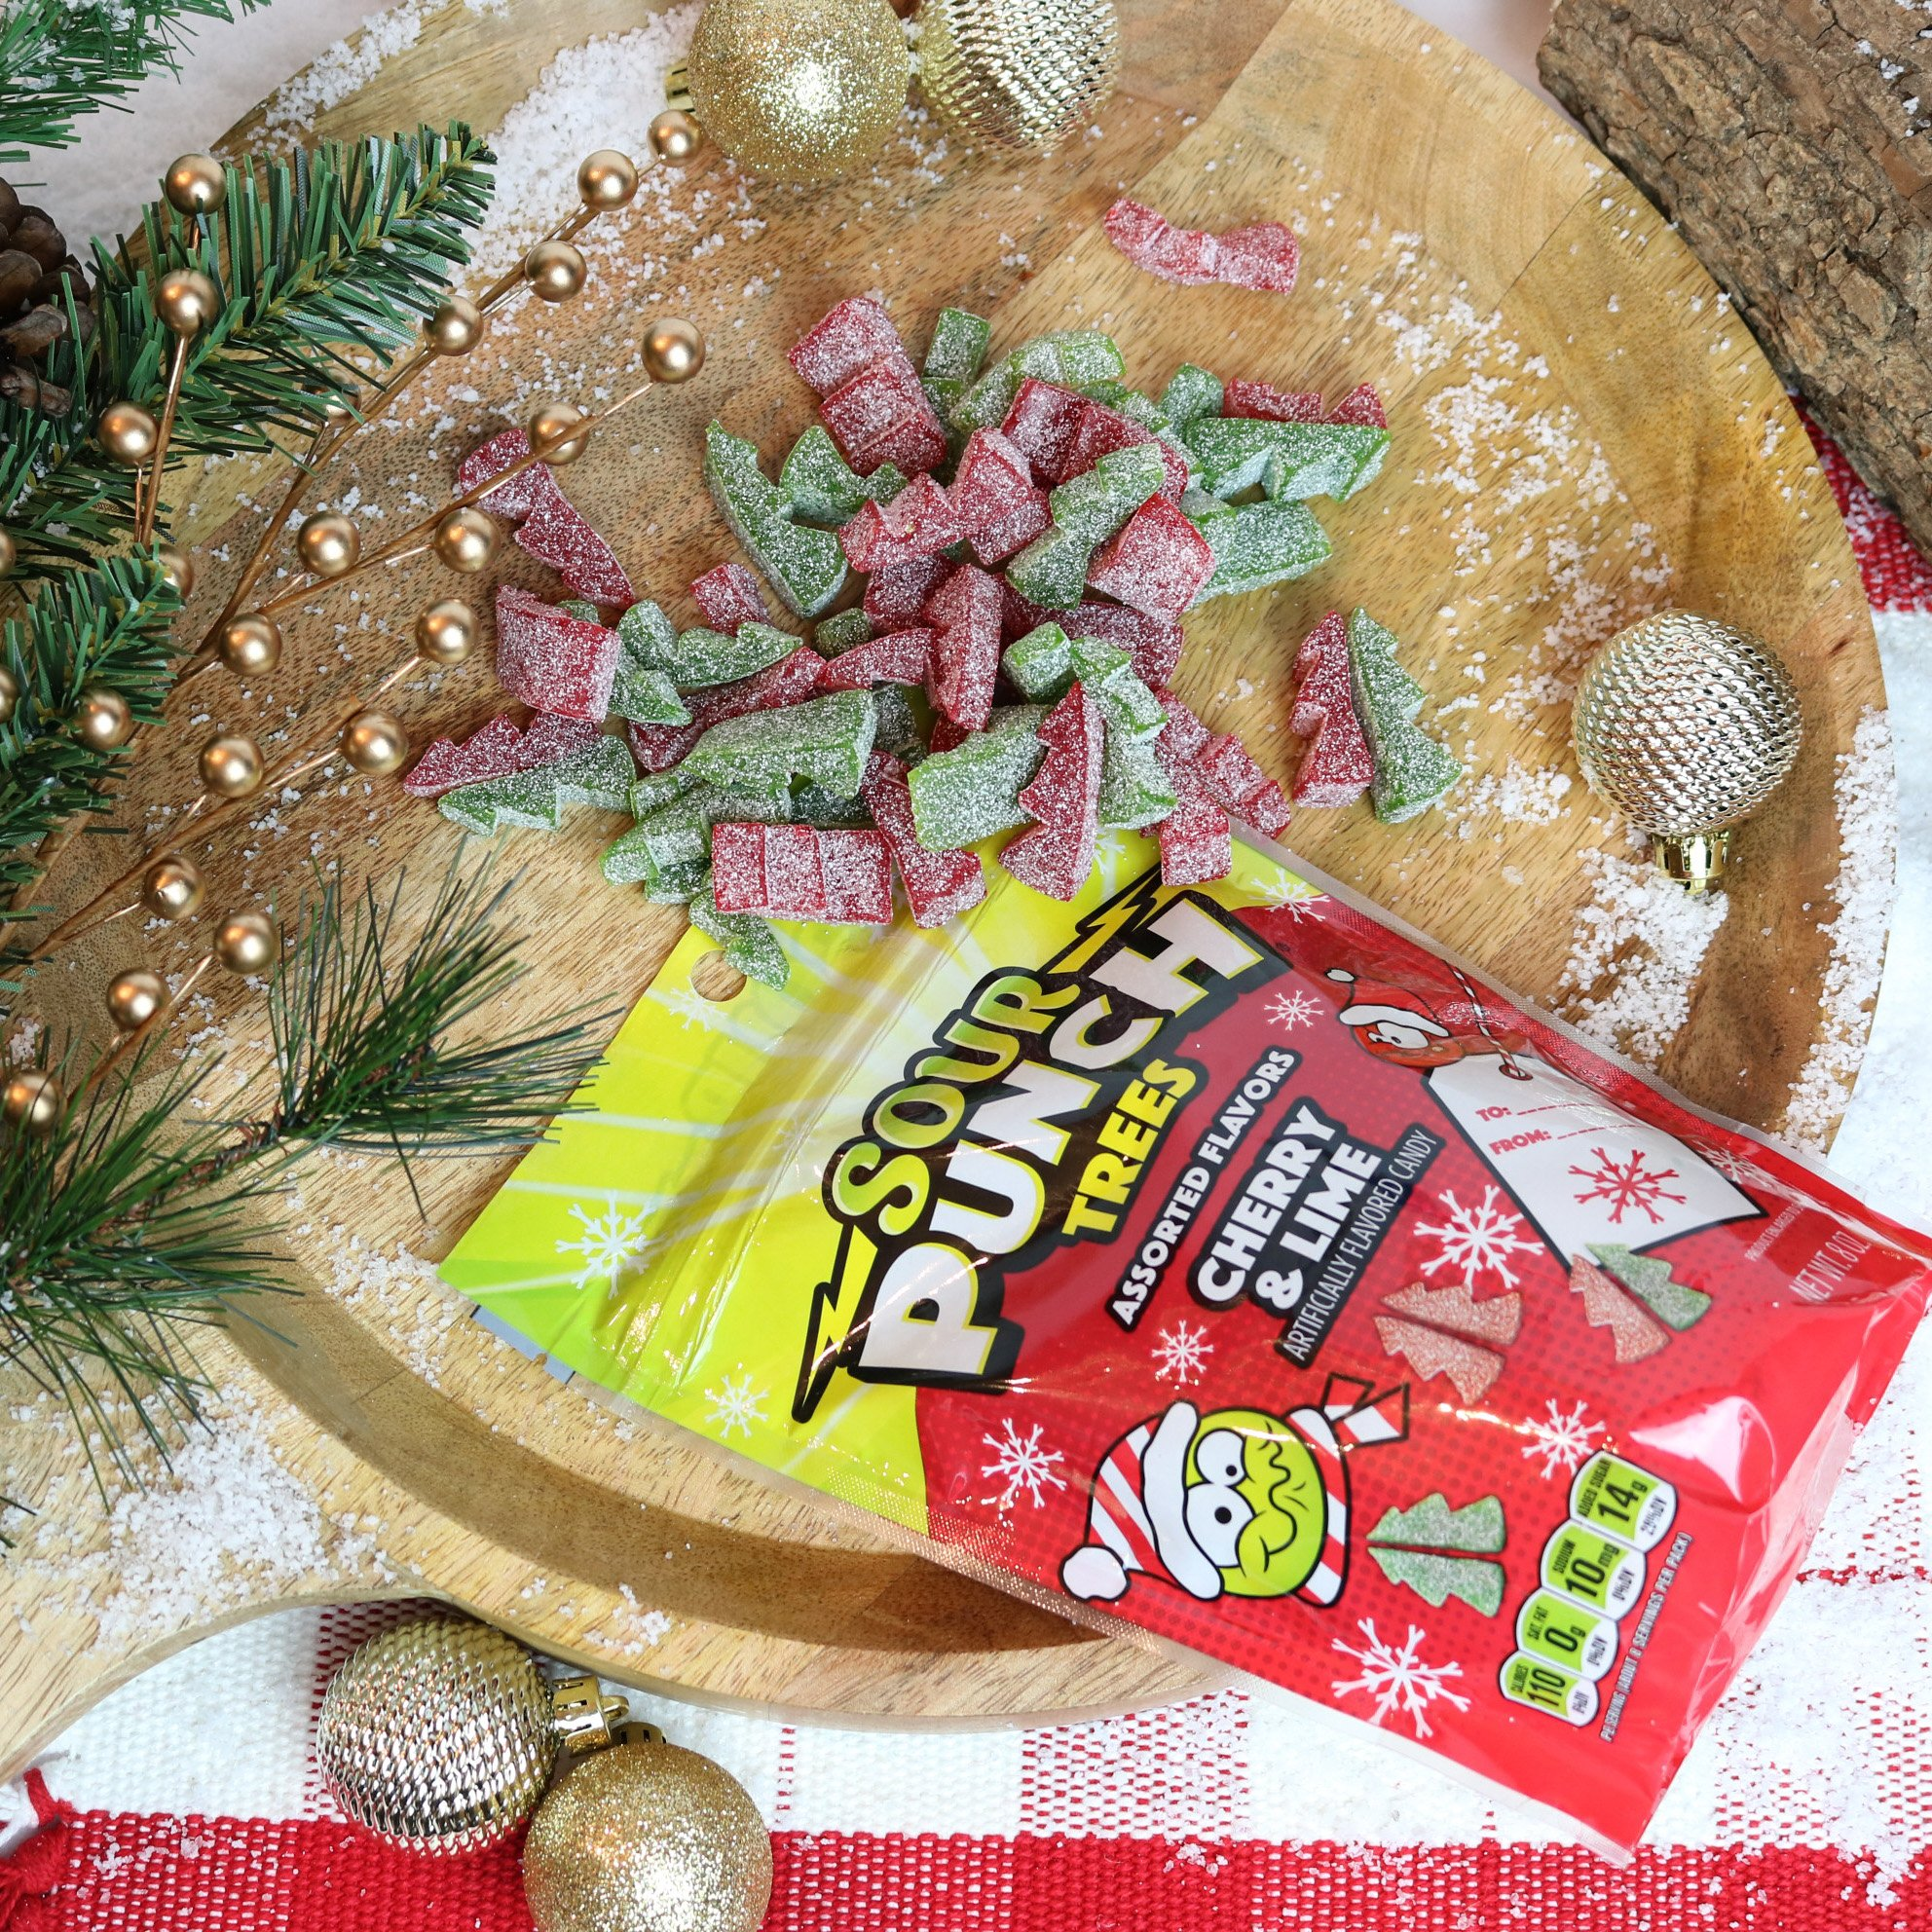 Sour Punch Assorted Flavors Cherry & Lime